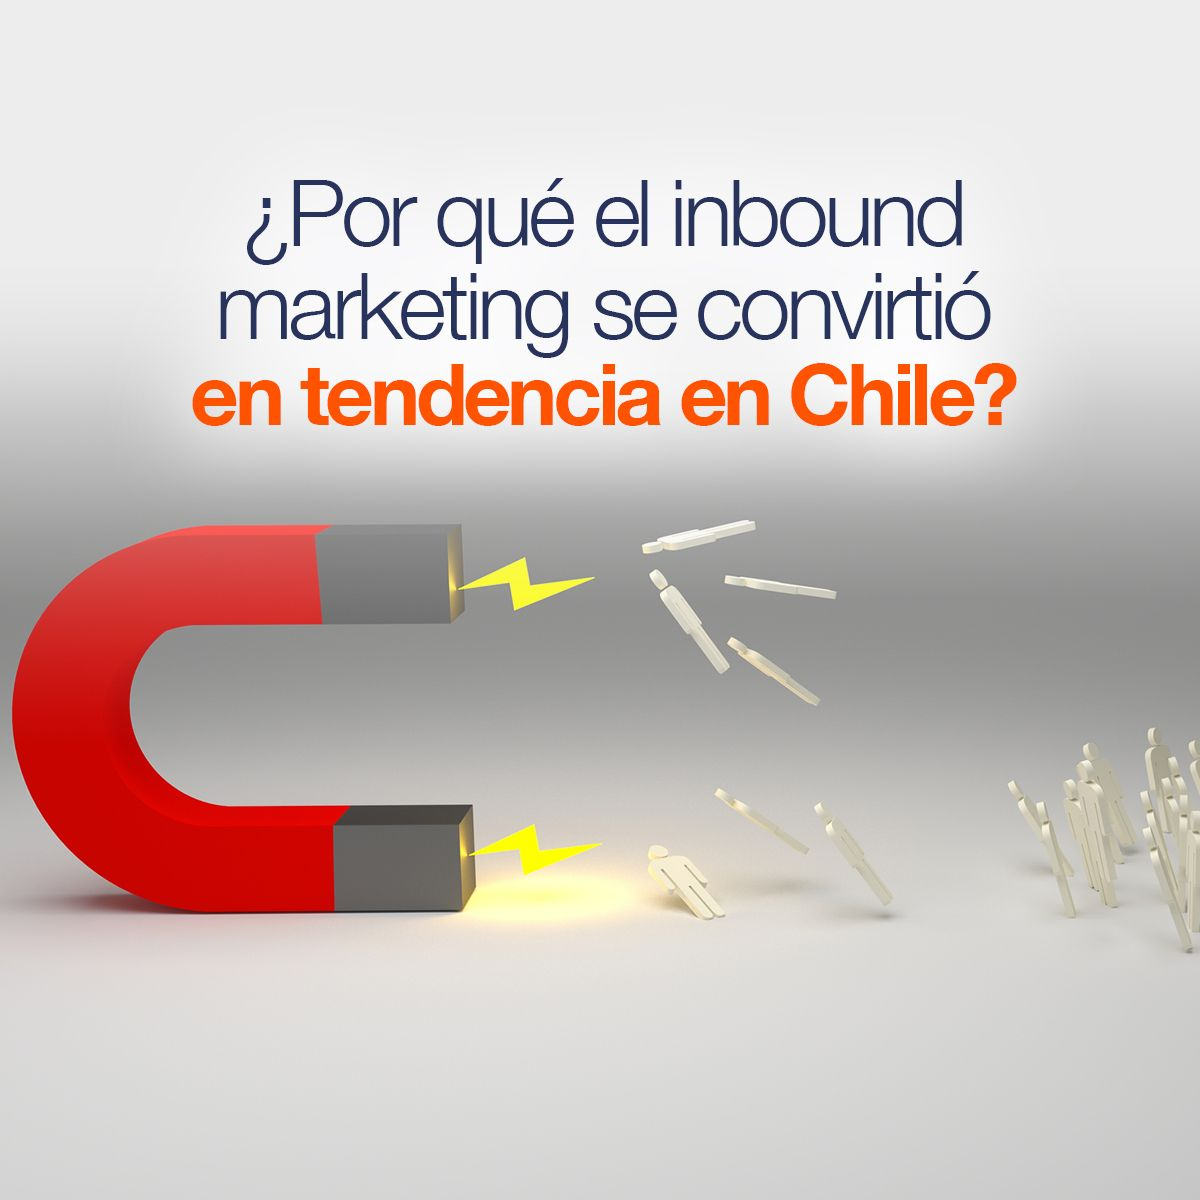 ¿Por qué el inbound marketing se convirtió en tendencia en Chile?